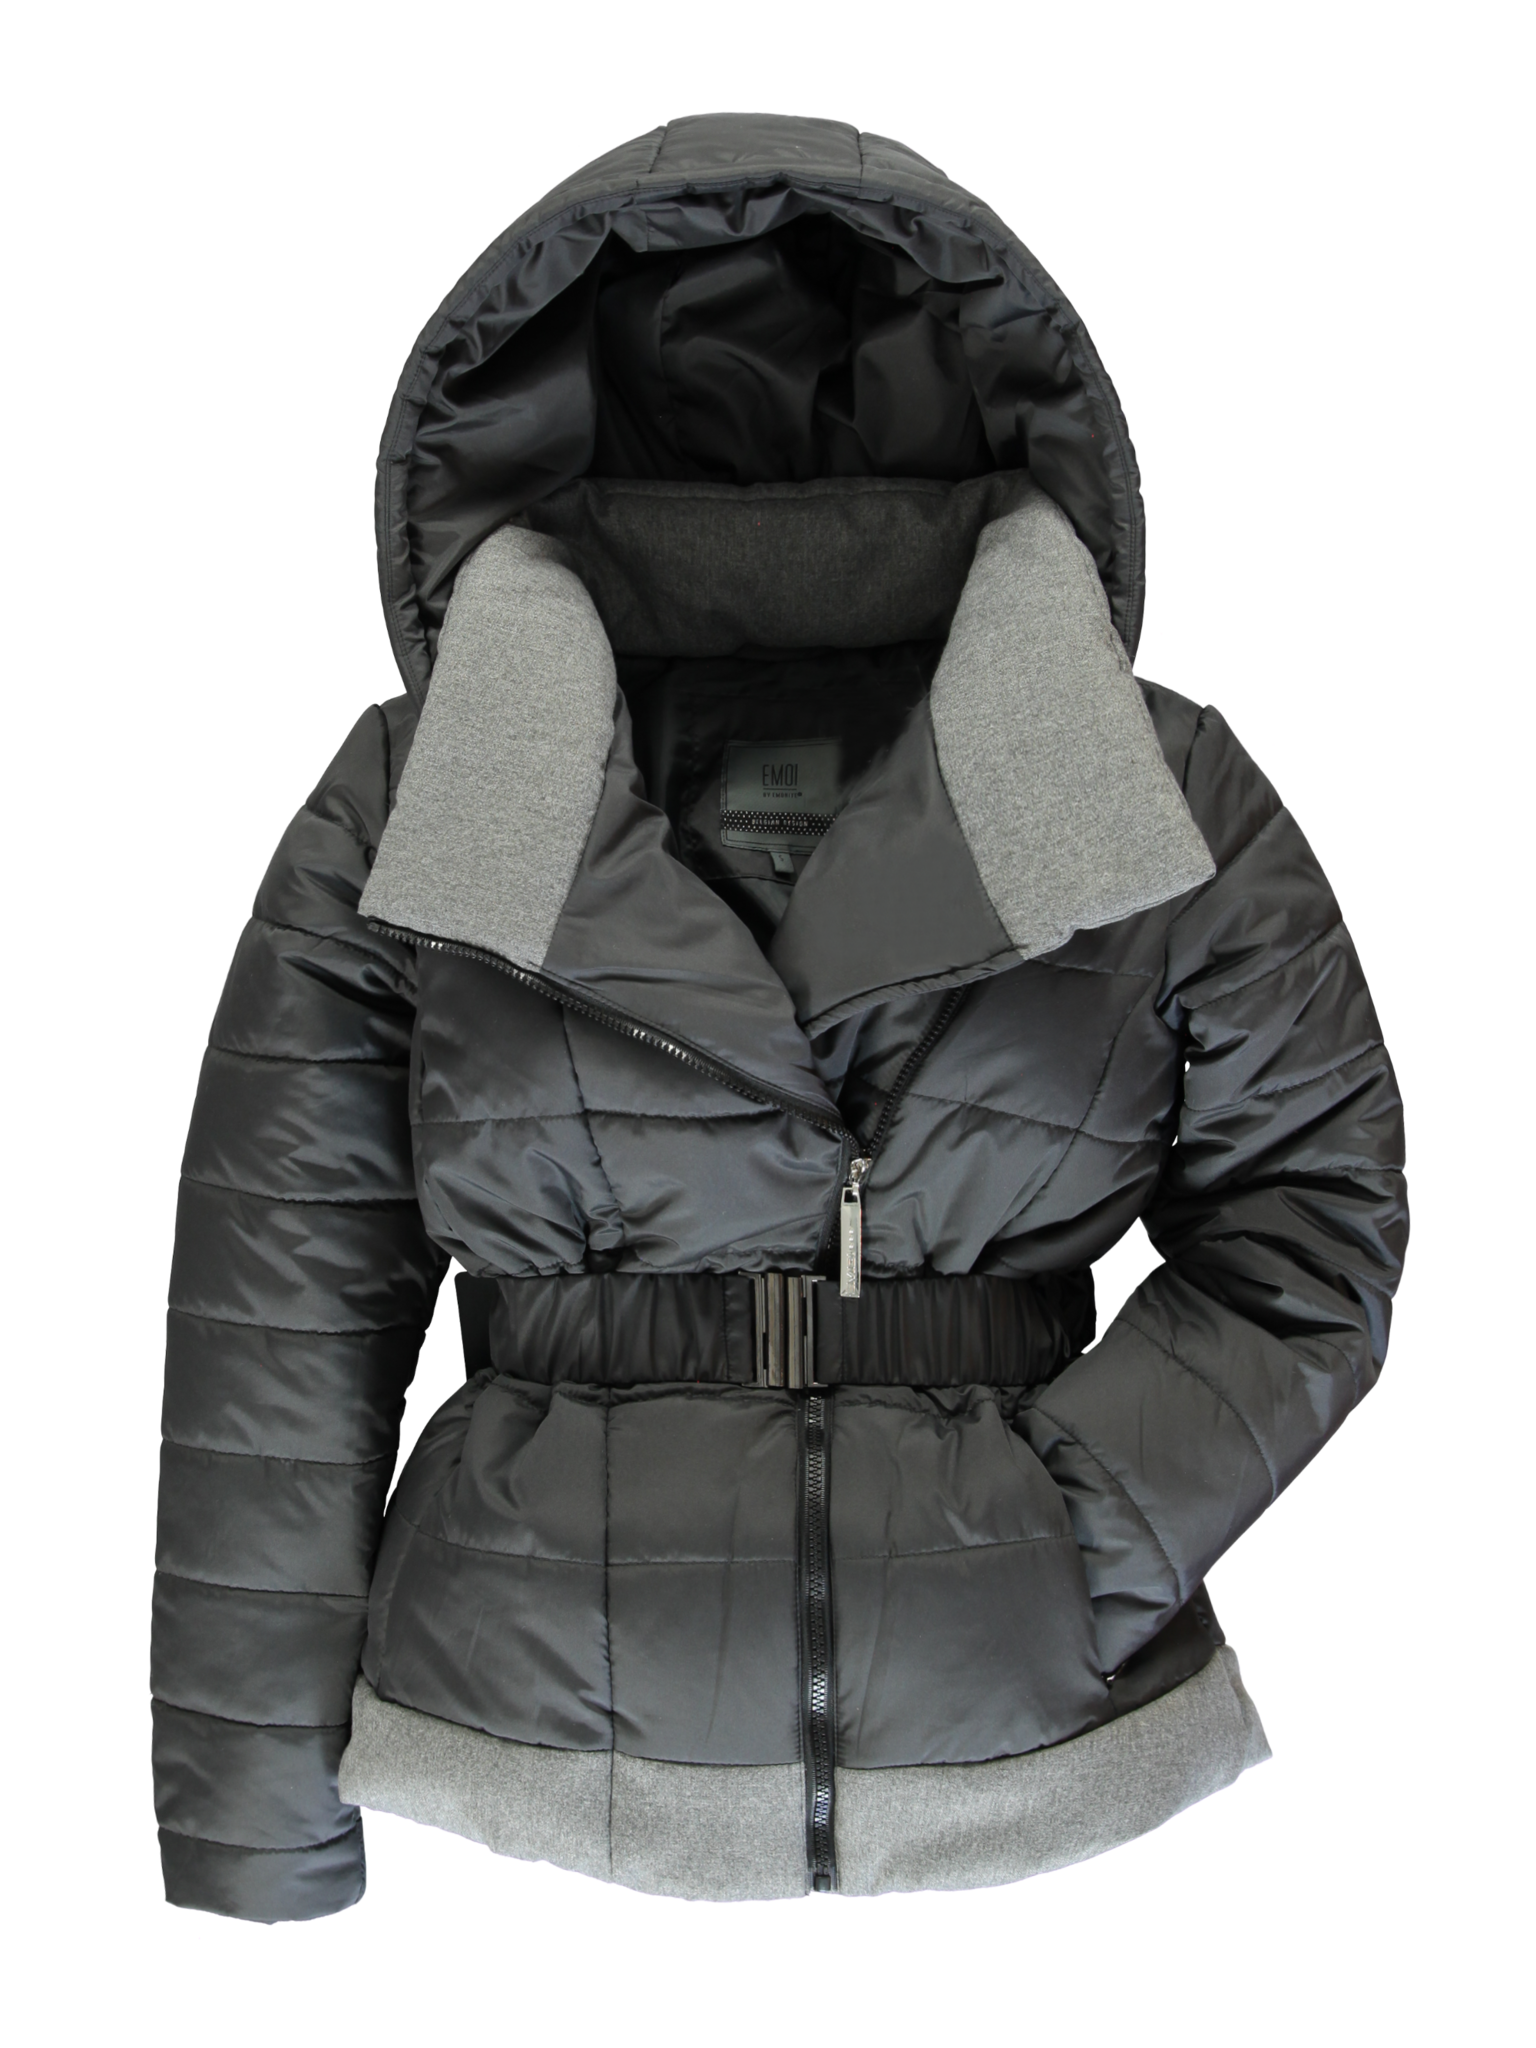 All Brands | Winterproducts Ladies | Jacket | 12 pcs/box